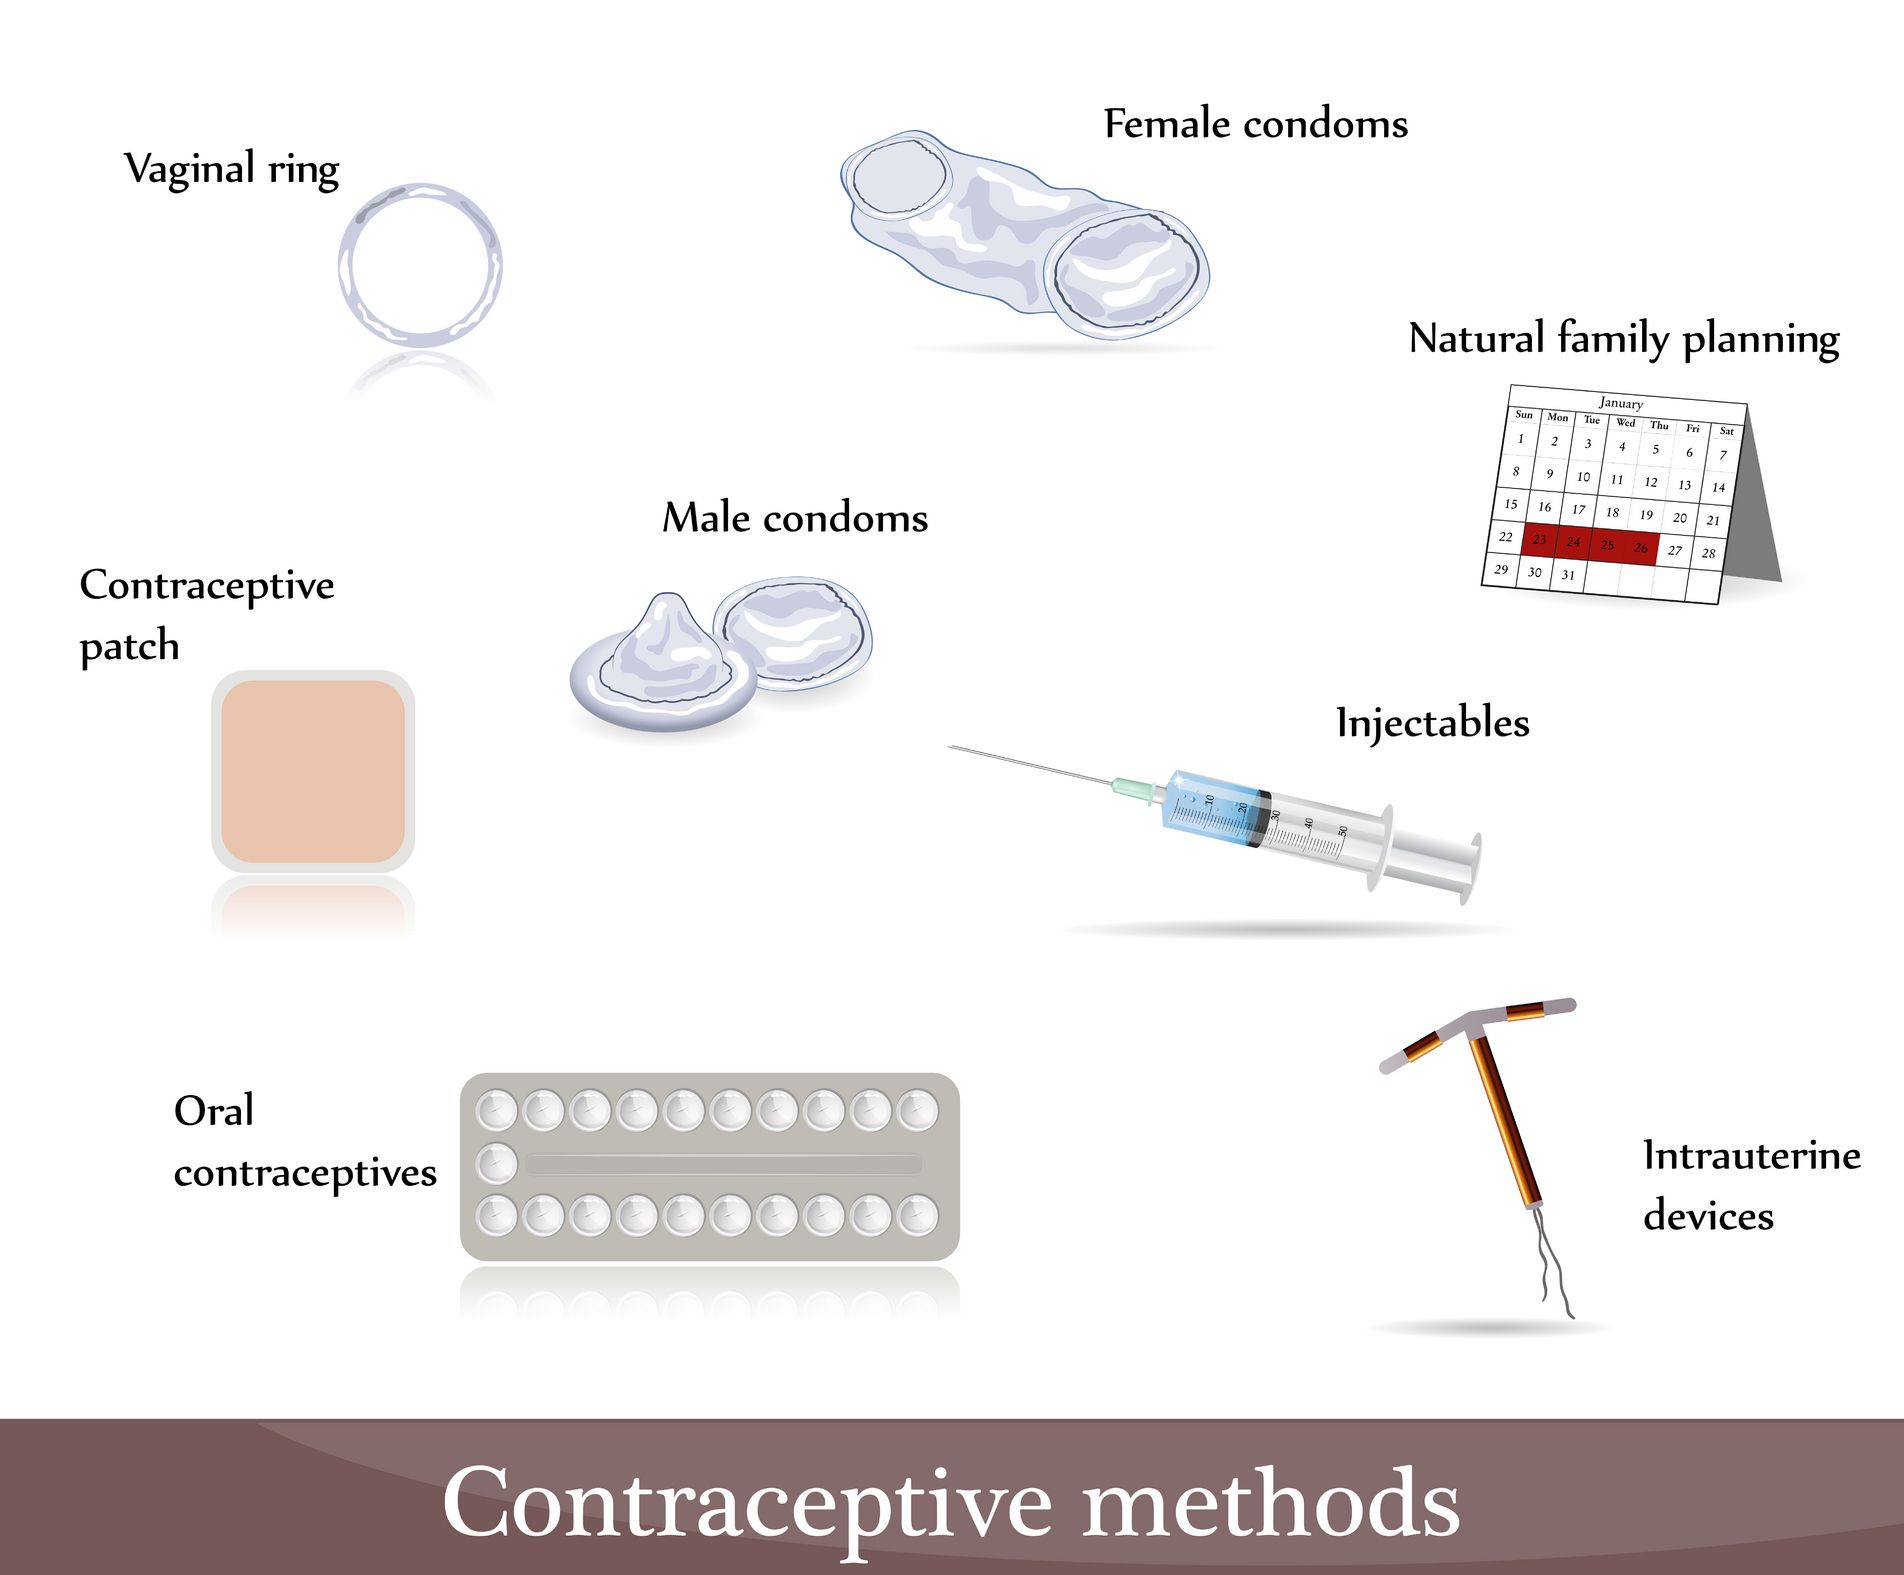 Contraception Options For Different Ages And Stages Contraception Or Birth Control Is A Method For Preventing Pregnancy The Birth Control Methods Are Of